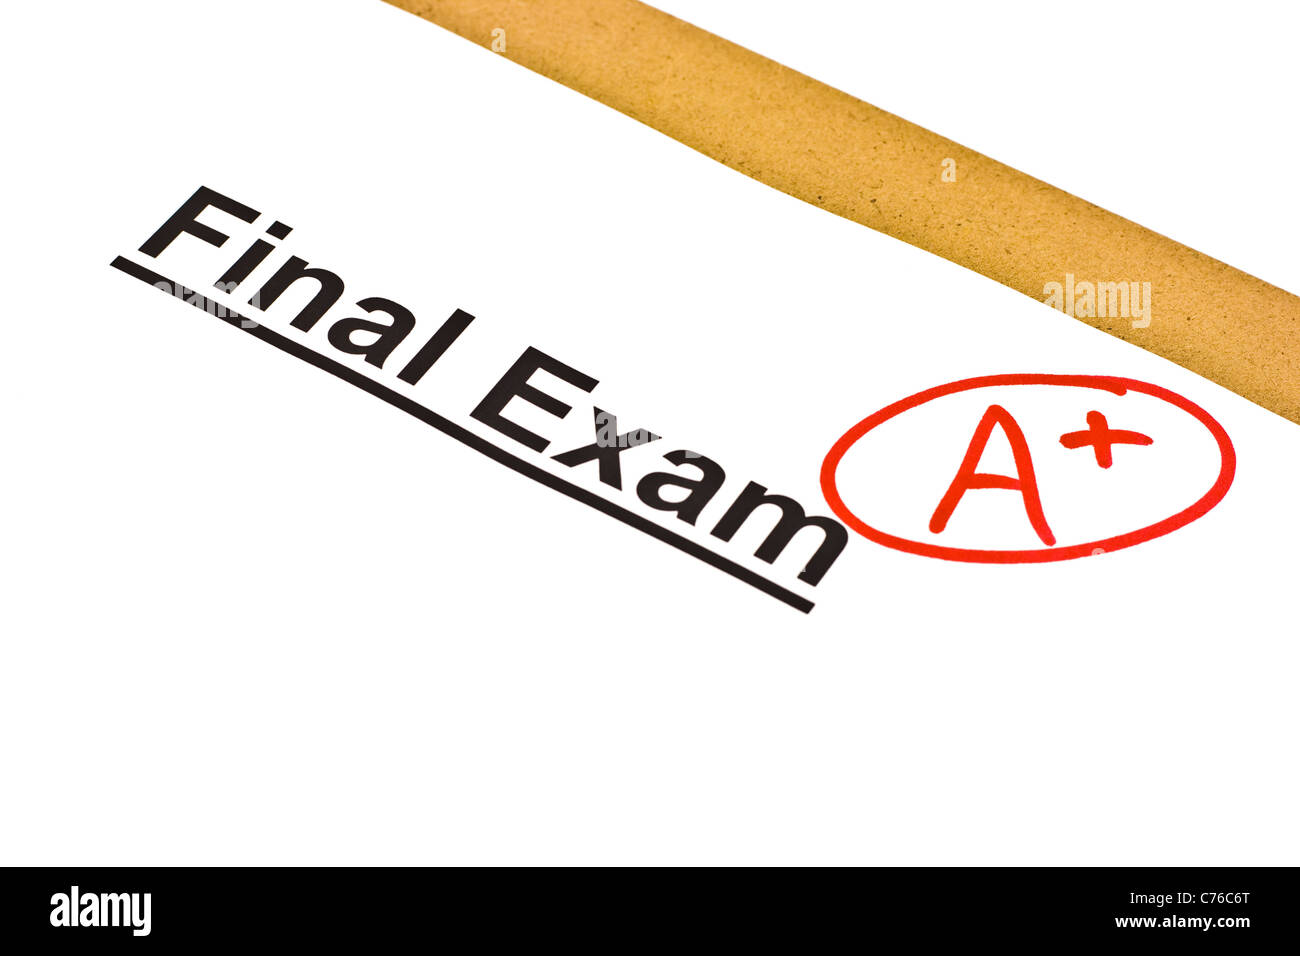 Final exam marked with A+ isolated on white - Stock Image